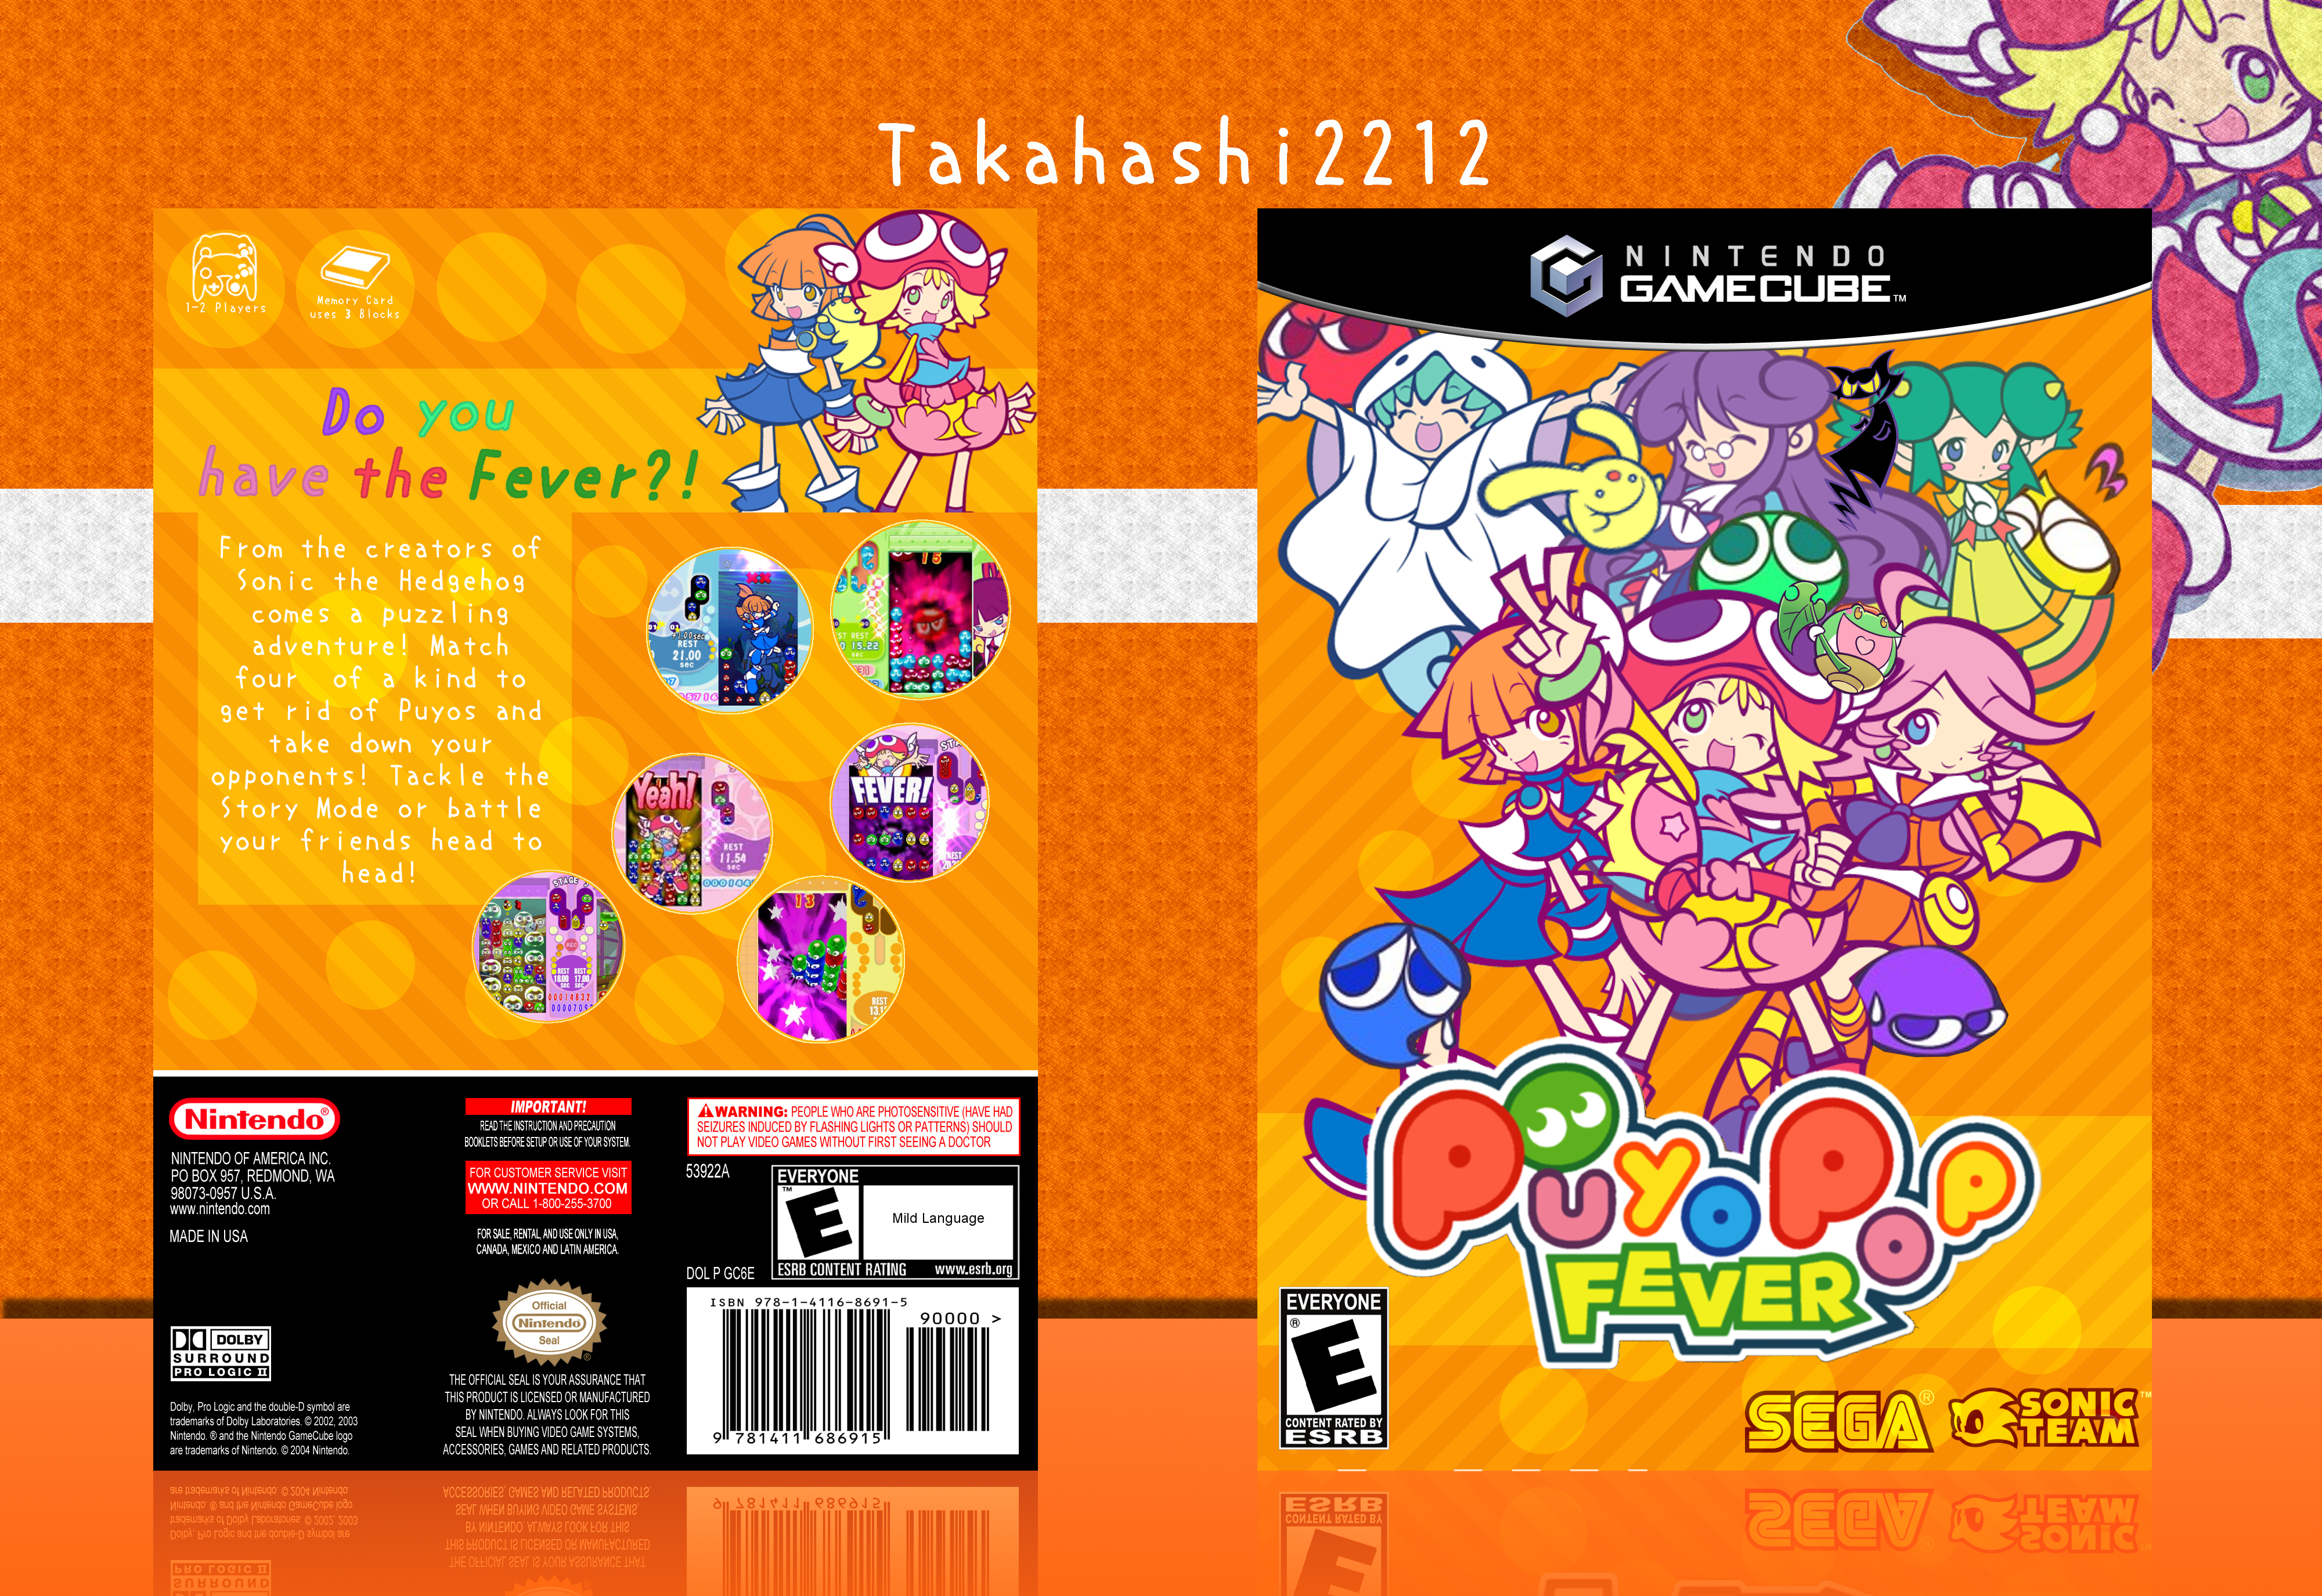 puyo pop fever gamecube box art cover by takahashi2212